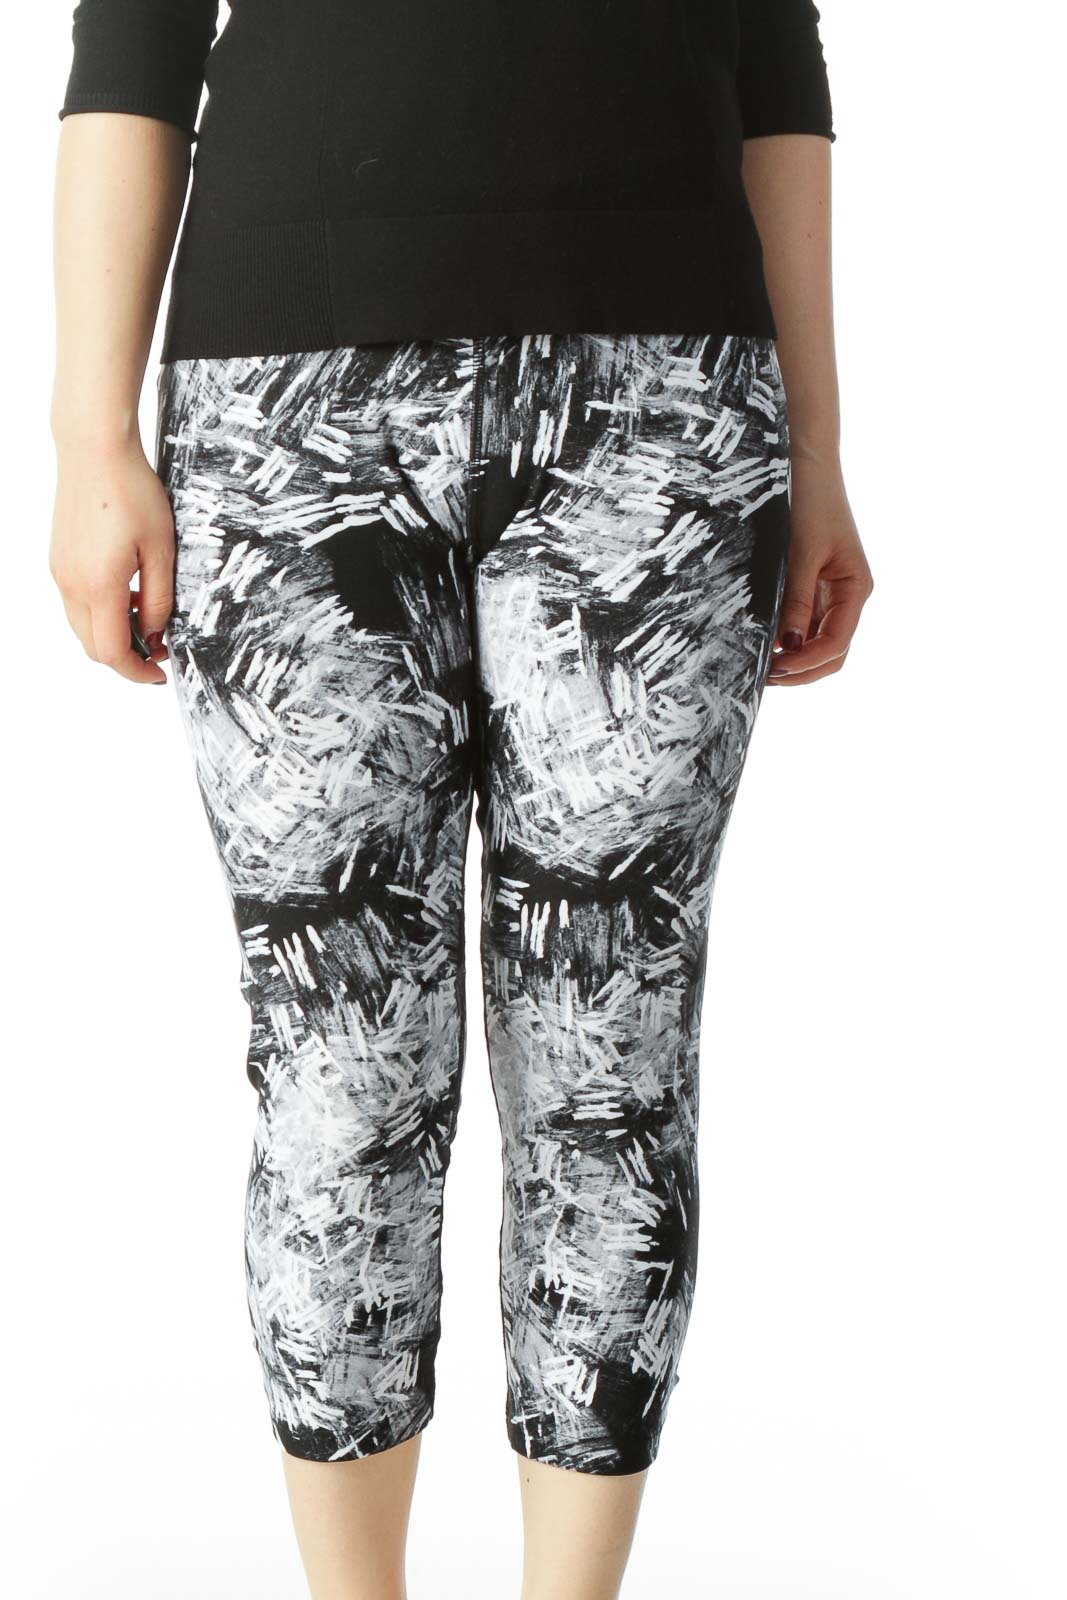 Black and White Capri Yoga Pant